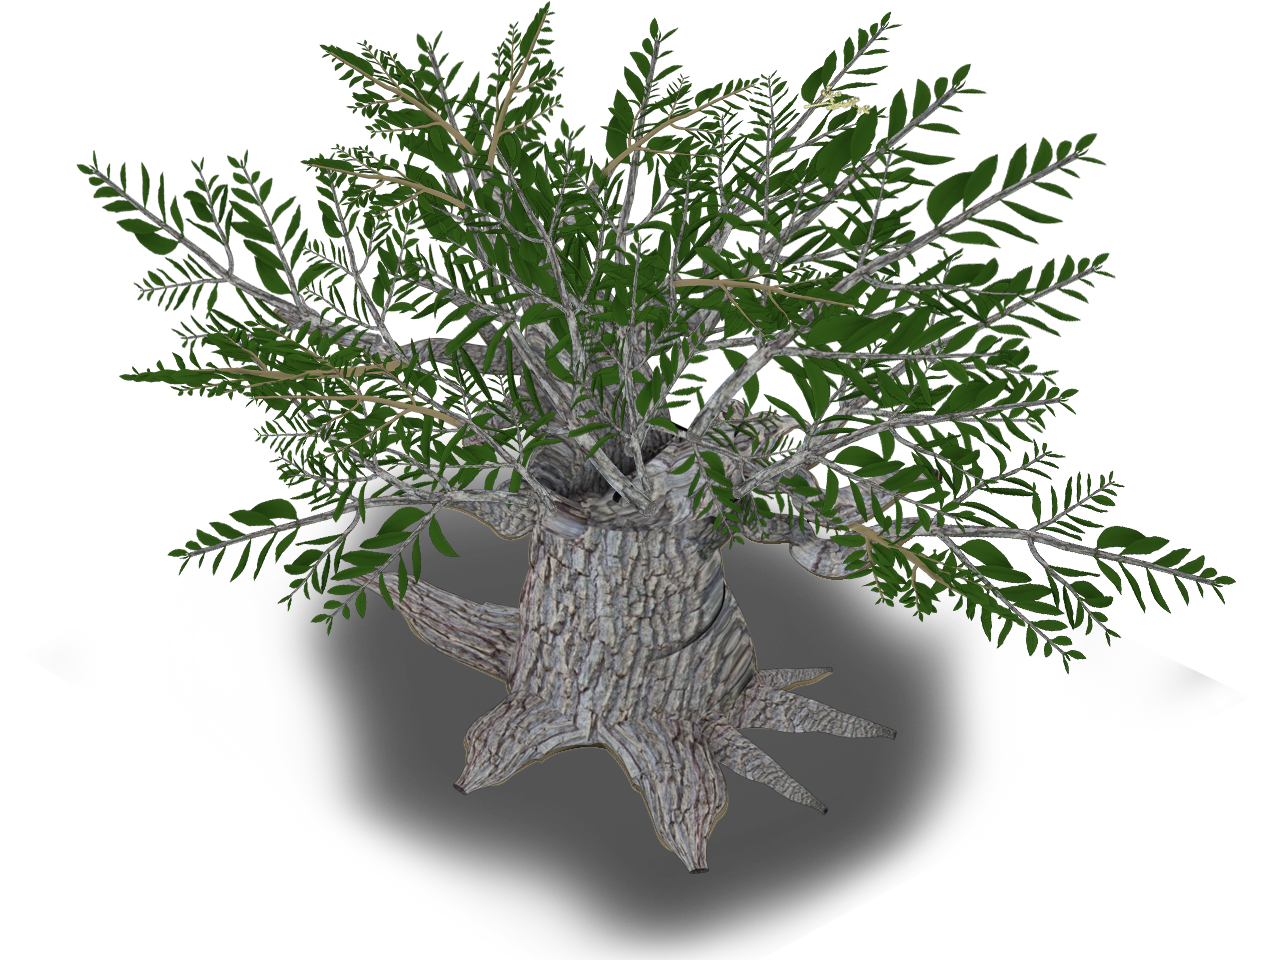 Roots clipart kapok tree. Visceral intricacy iv olive